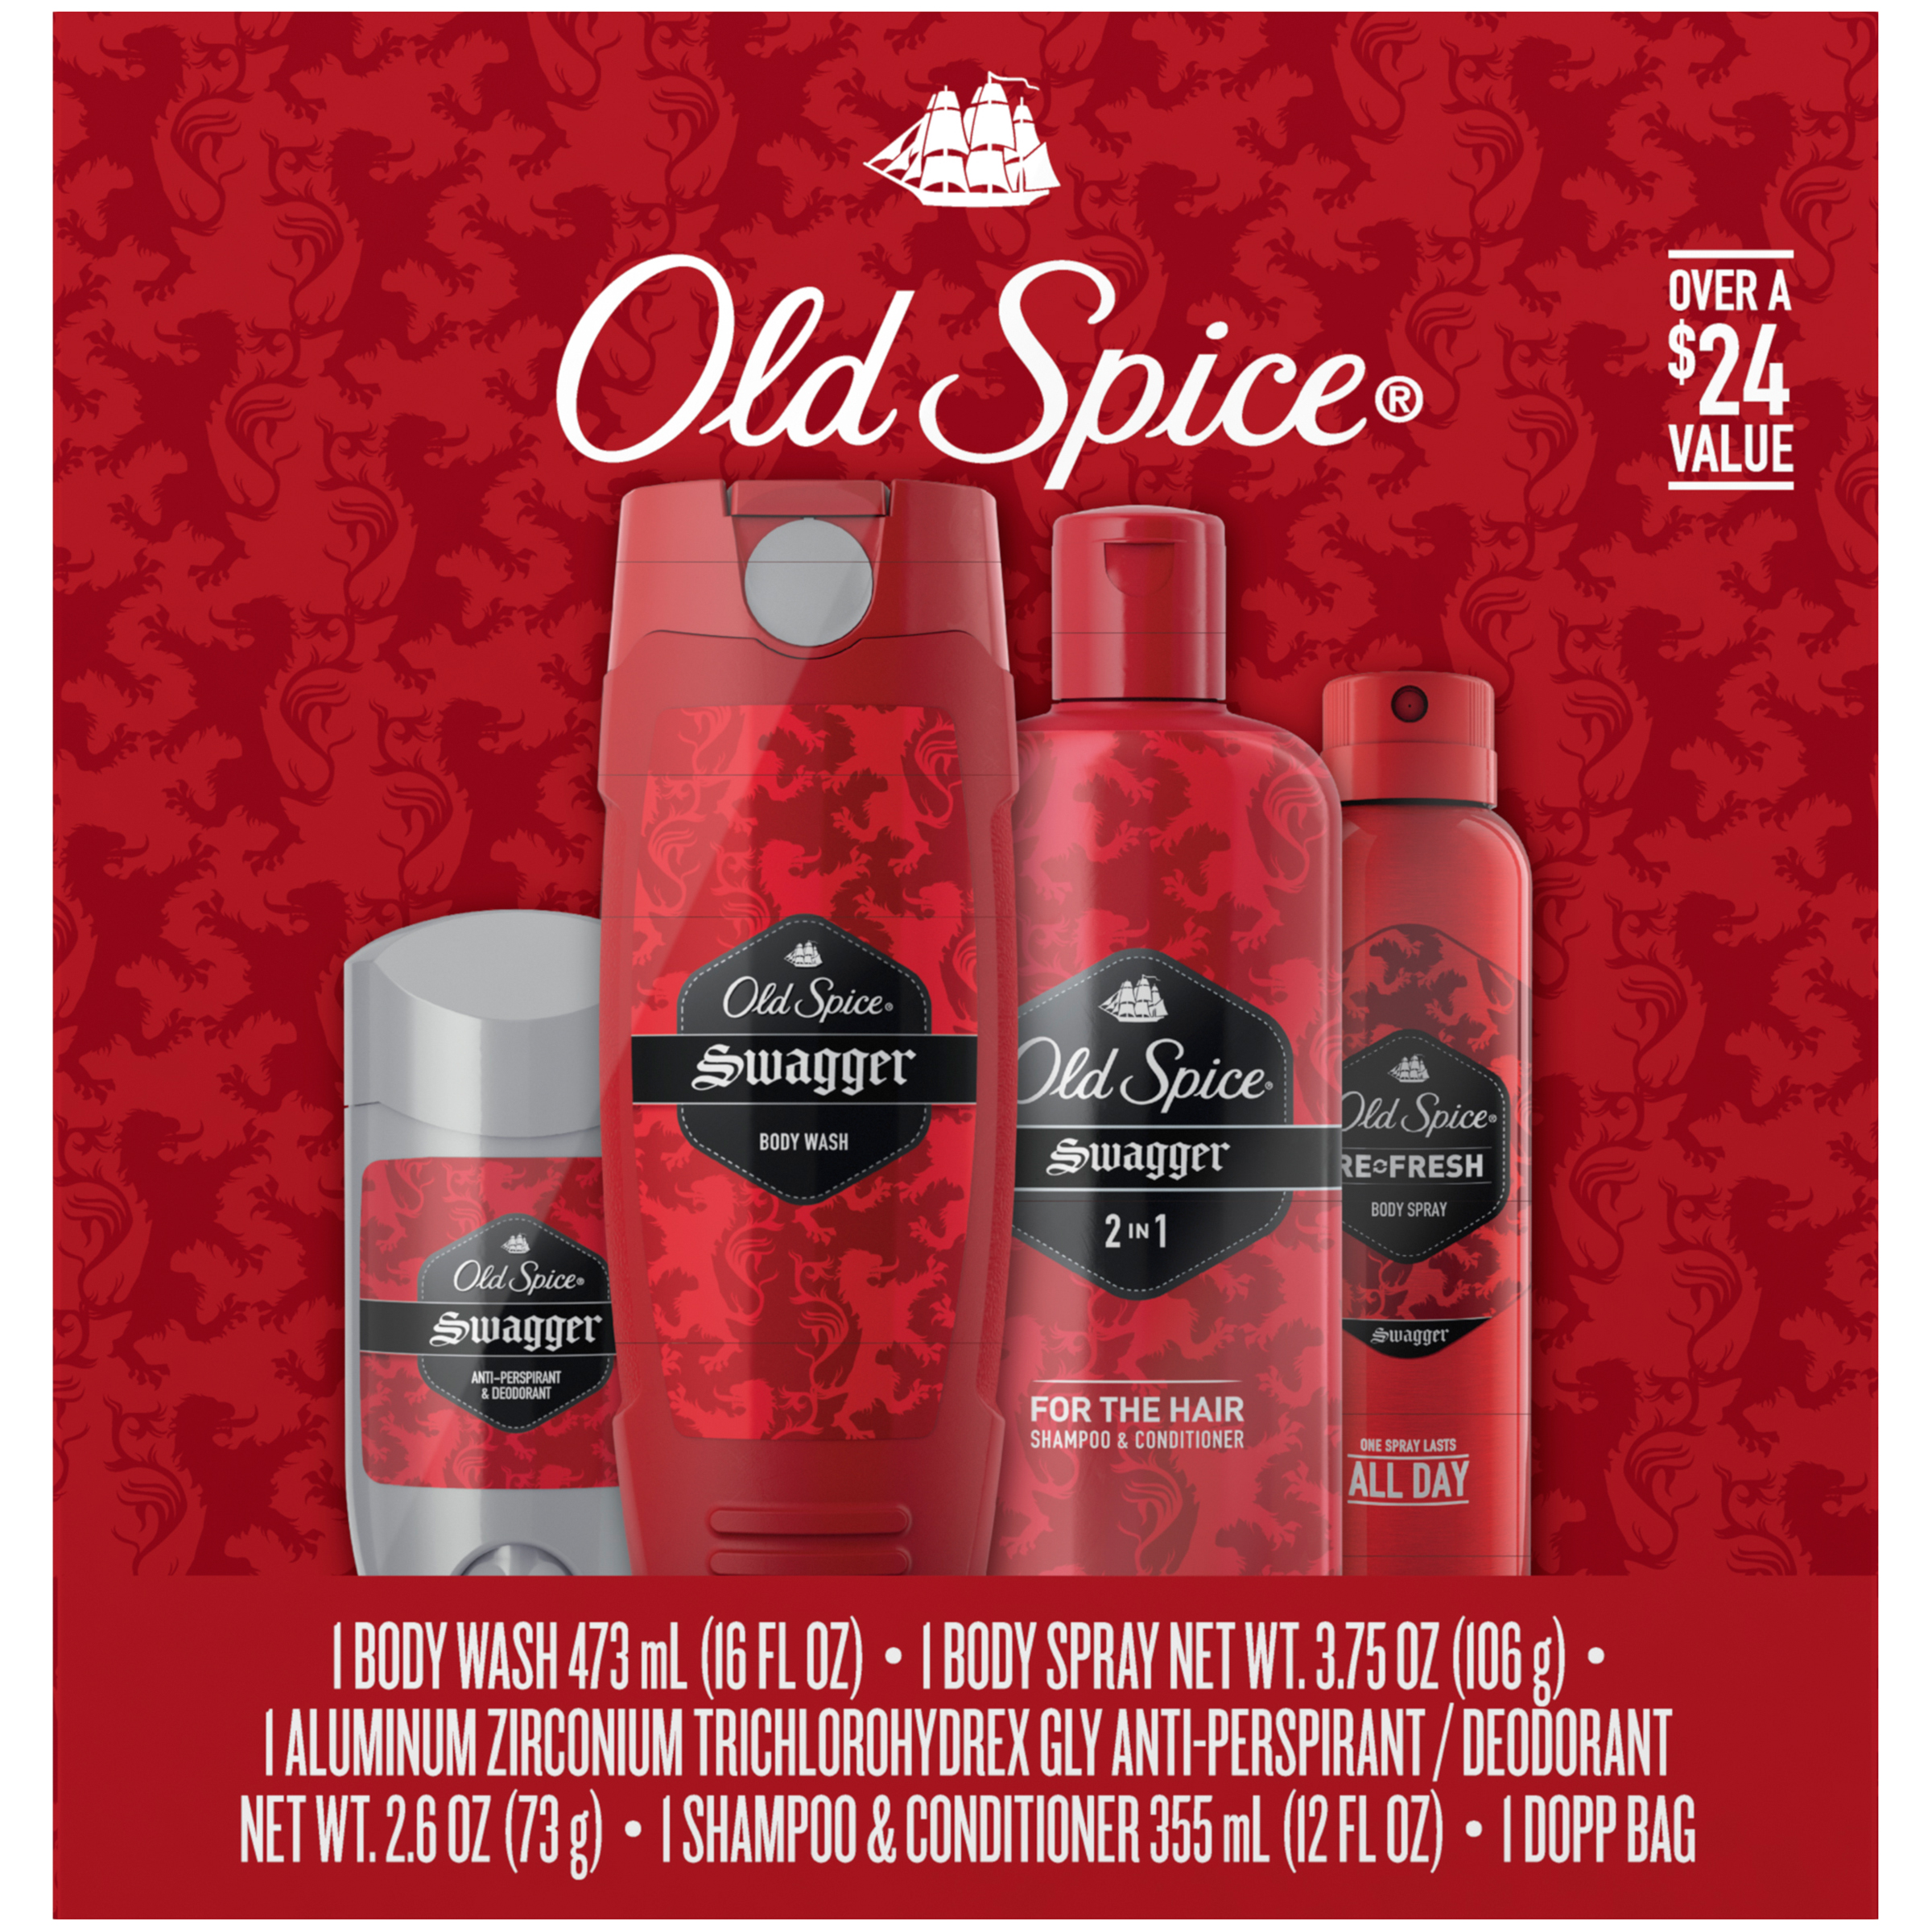 Old Spice Swagger Red Zone Body Wash, Body Spray, Deodorant & Shampoo Gift Pack - 5 Pc